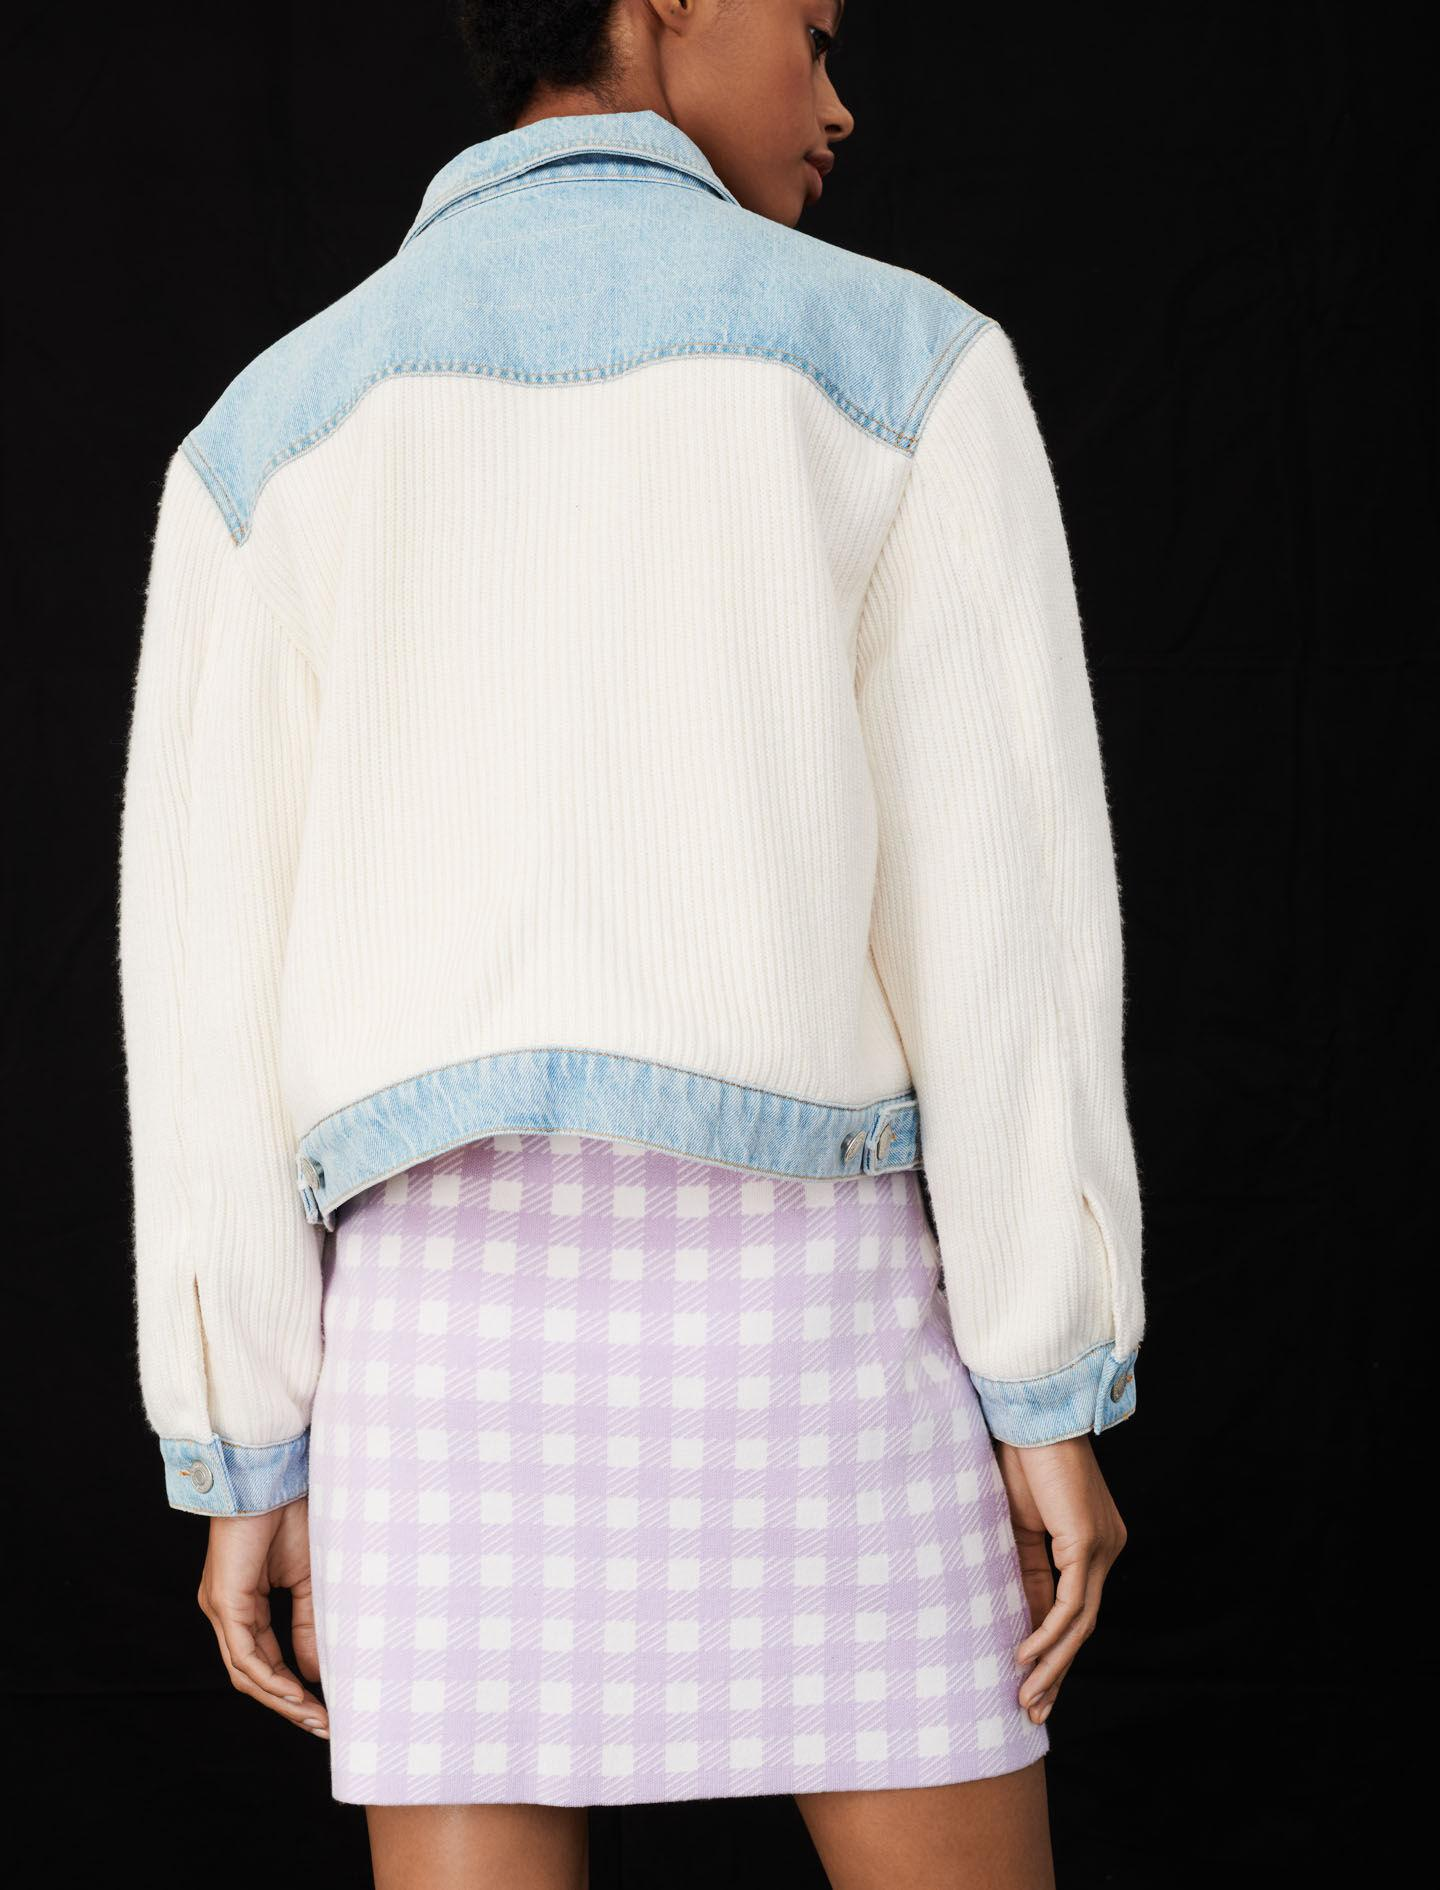 MIXED MATERIAL KNIT AND DENIM JACKET 4